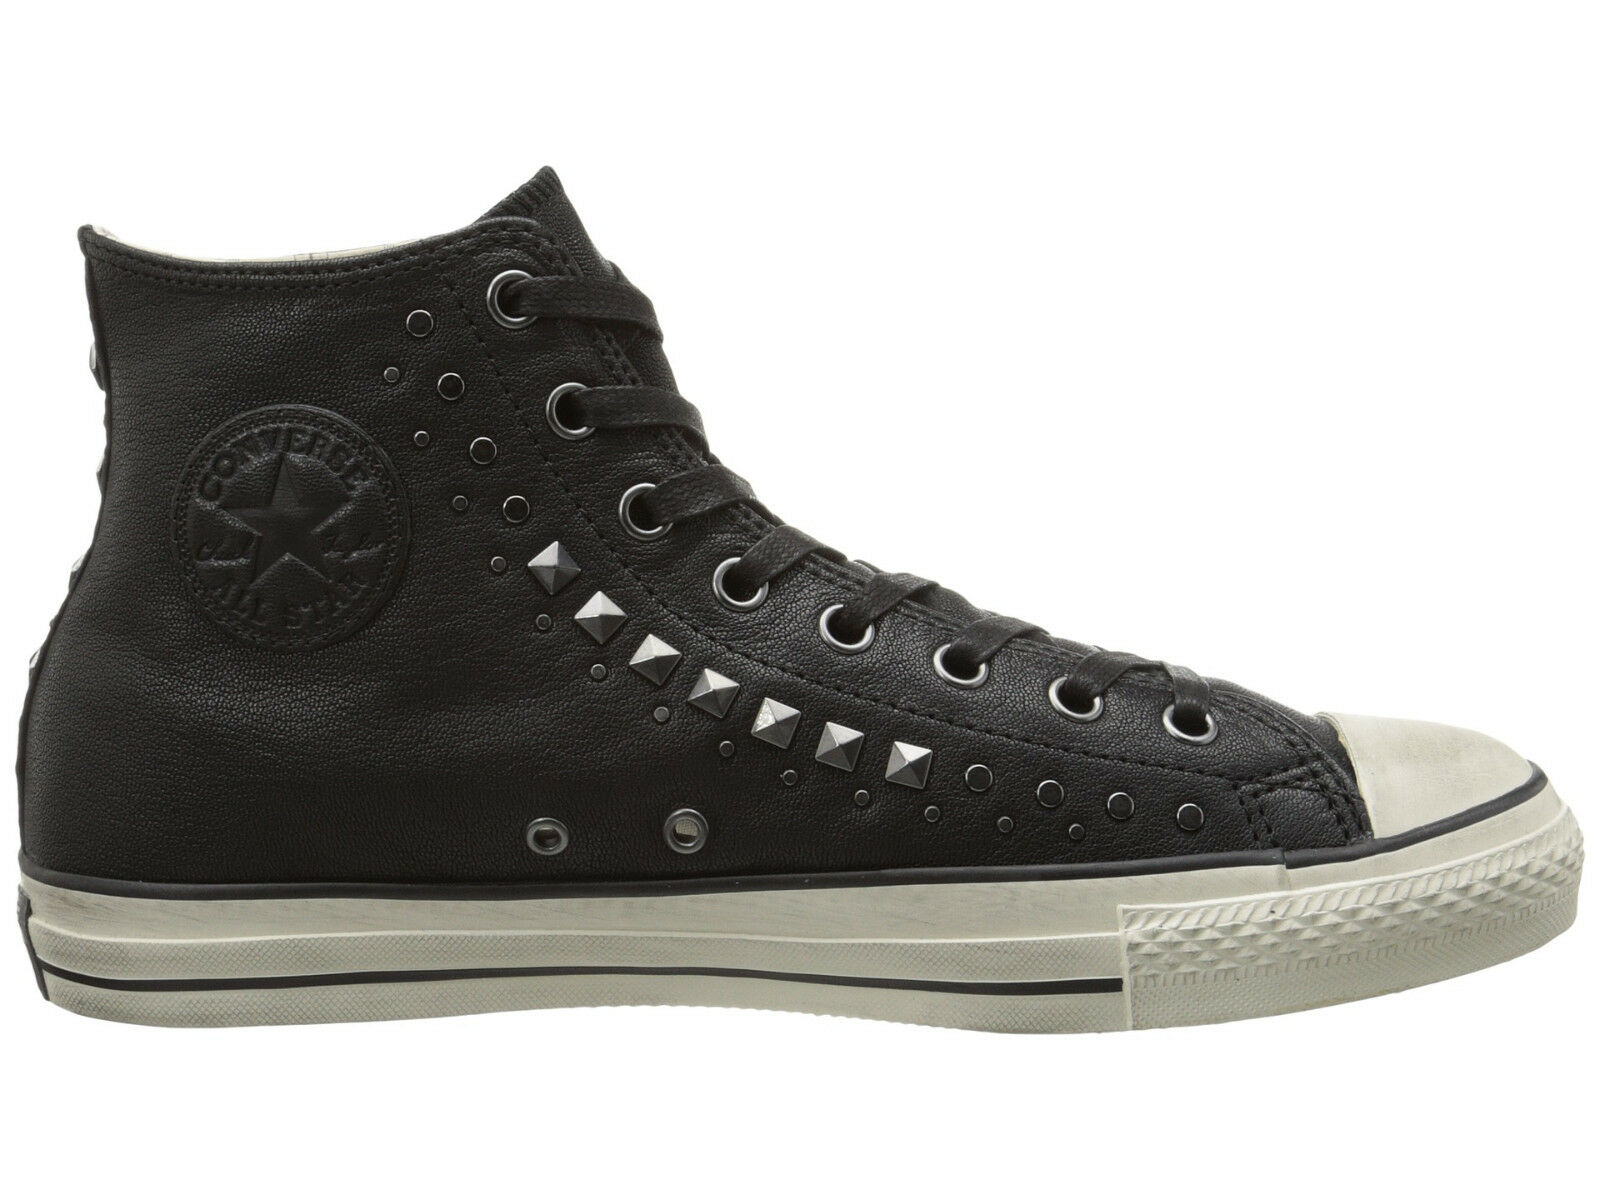 Authentic Converse X by John Varvatos Chuck Taylor All Star Studd Sneaker NWB